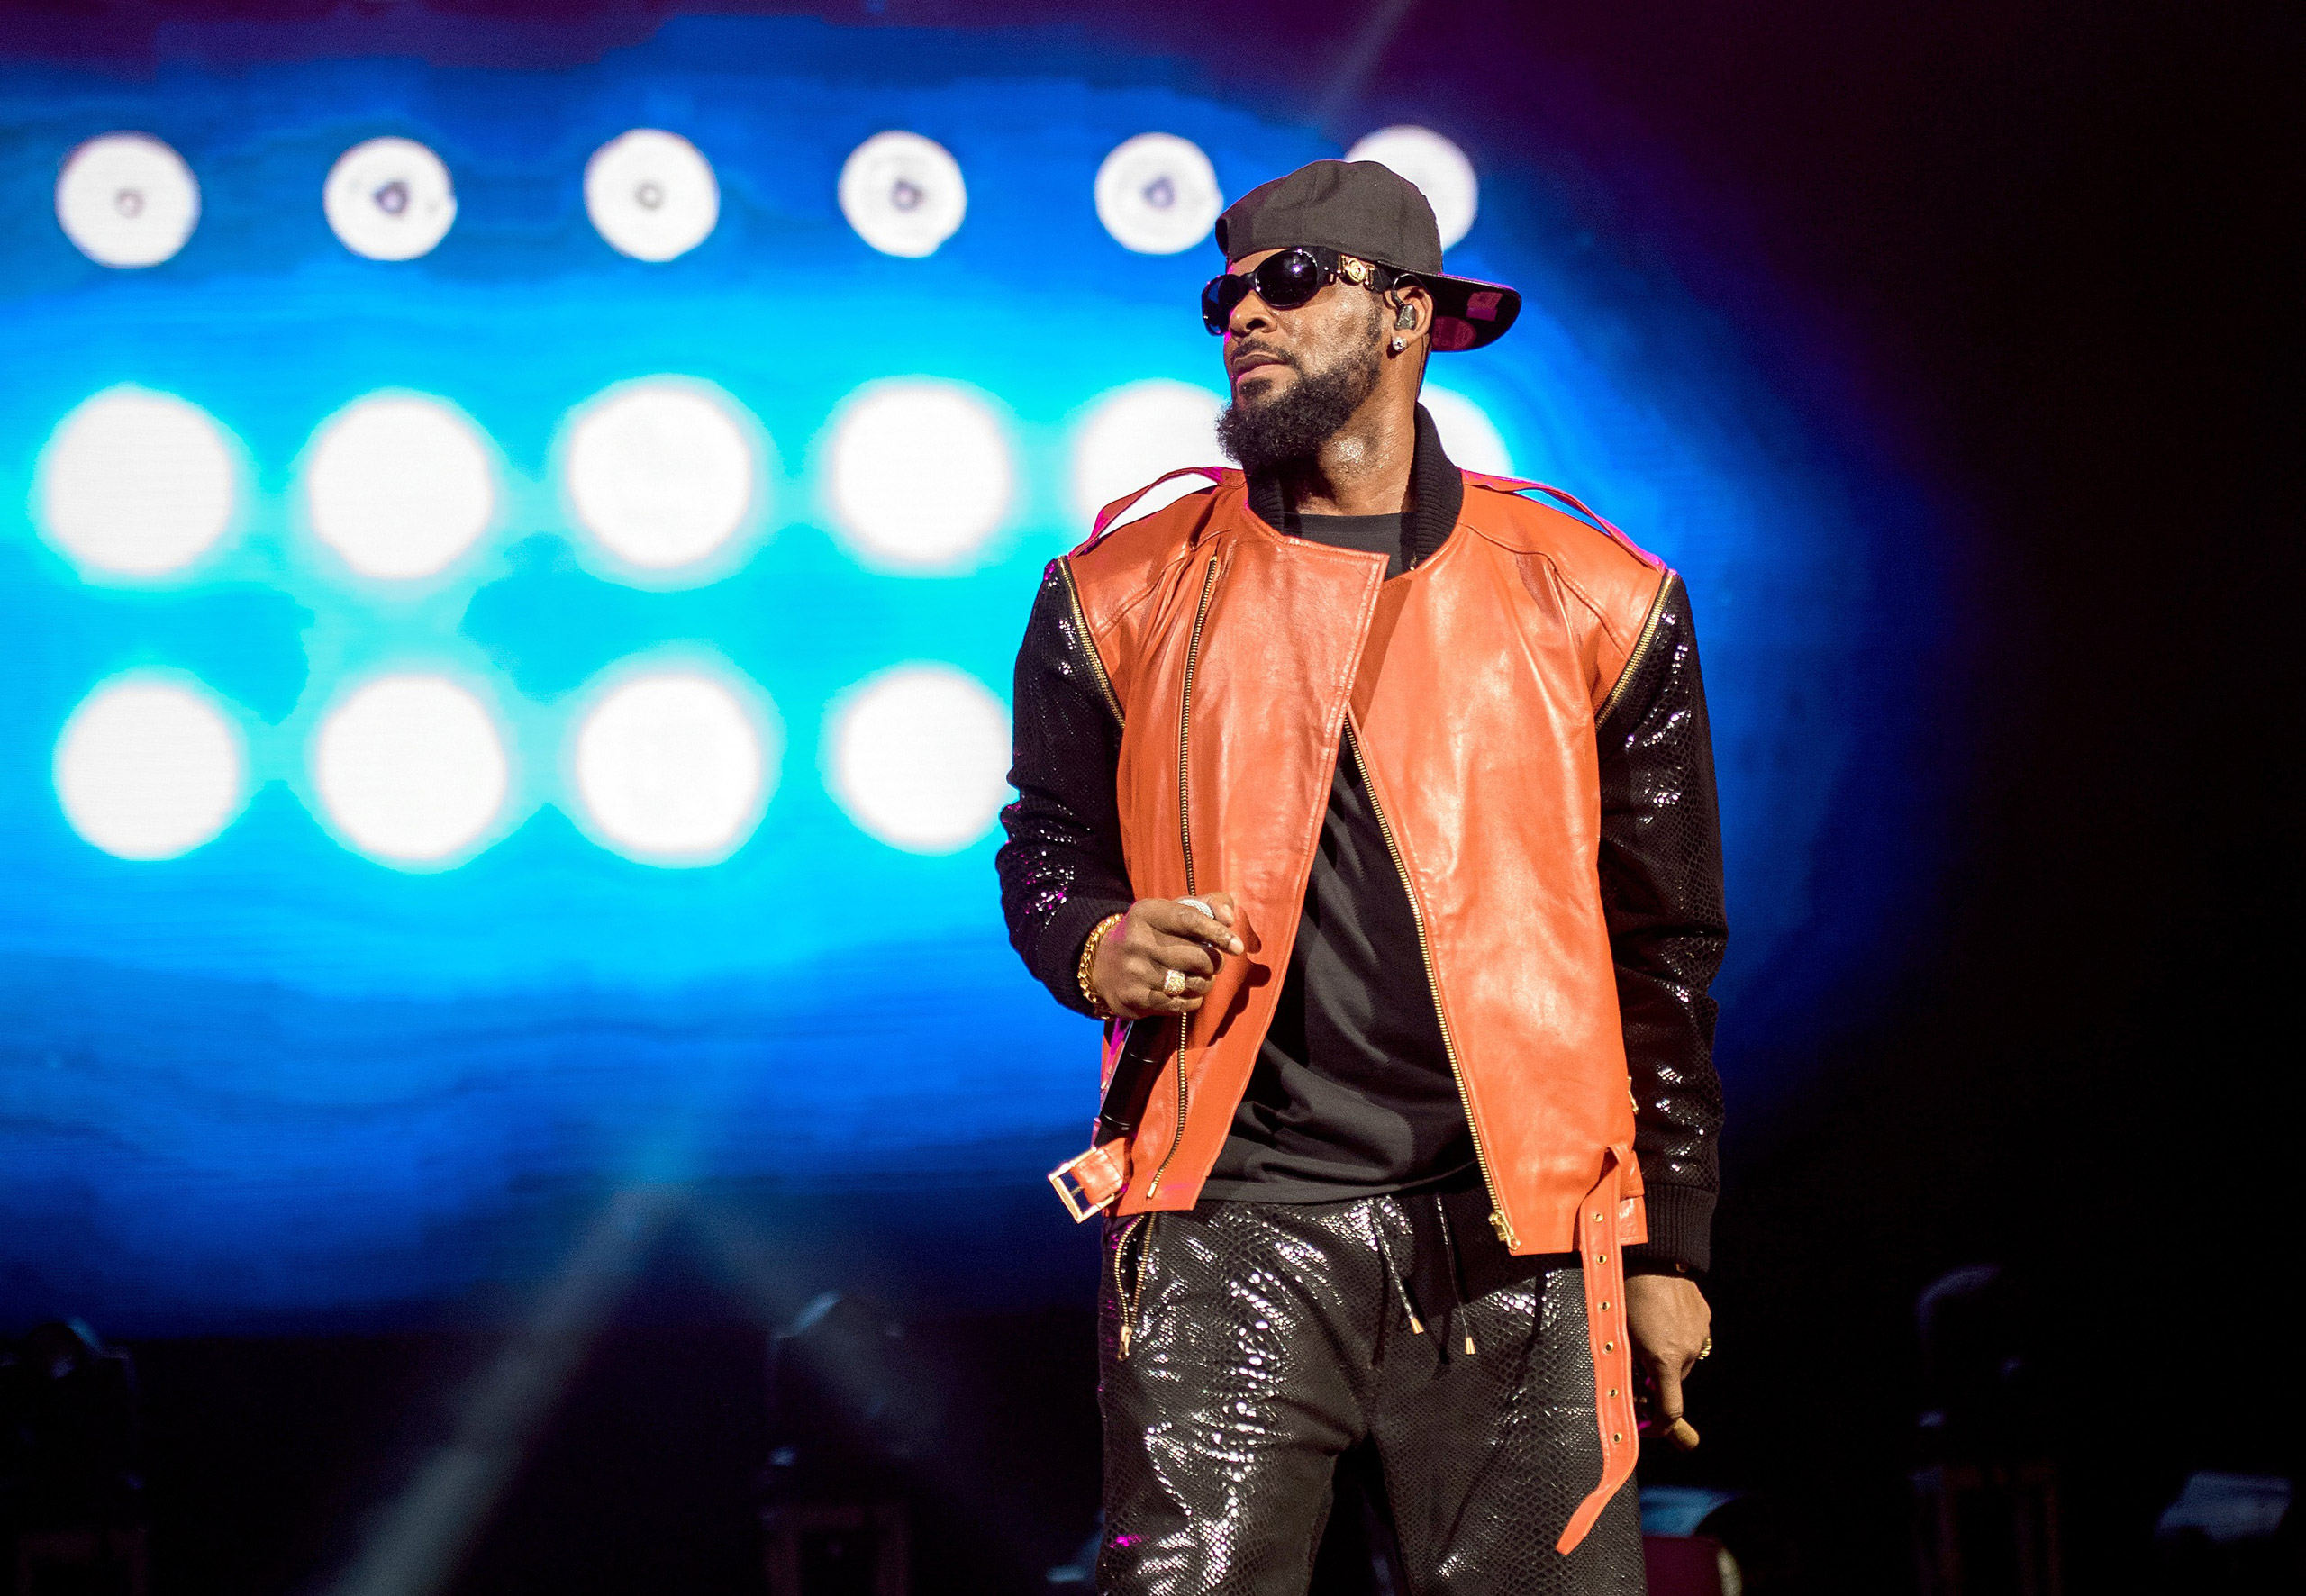 R. Kelly performs in concert at Barclays Center in New York on Sept. 25, 2015.